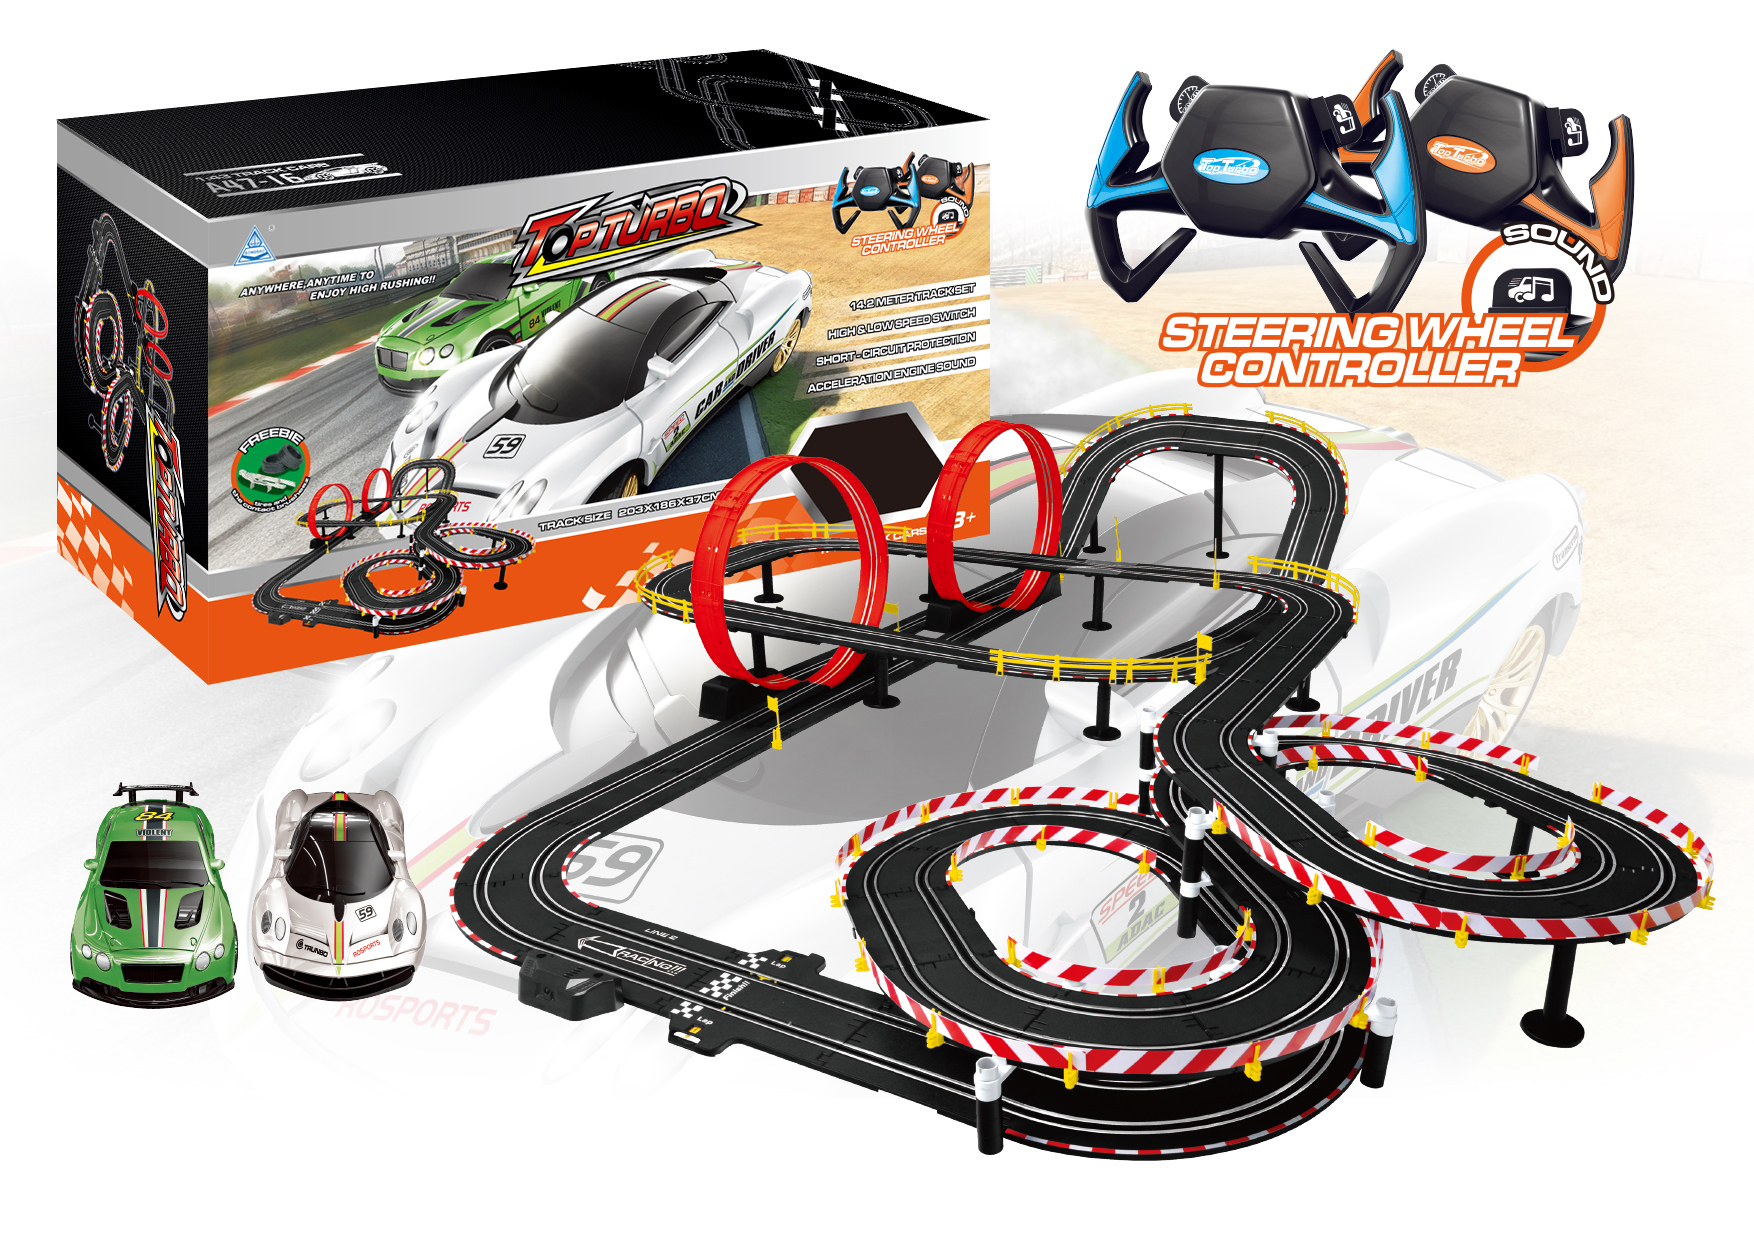 A47 16 Soba Toys Factory Track Total 1400cm Race Car Wih Set Speed Wire Wiring Christmas Plastic